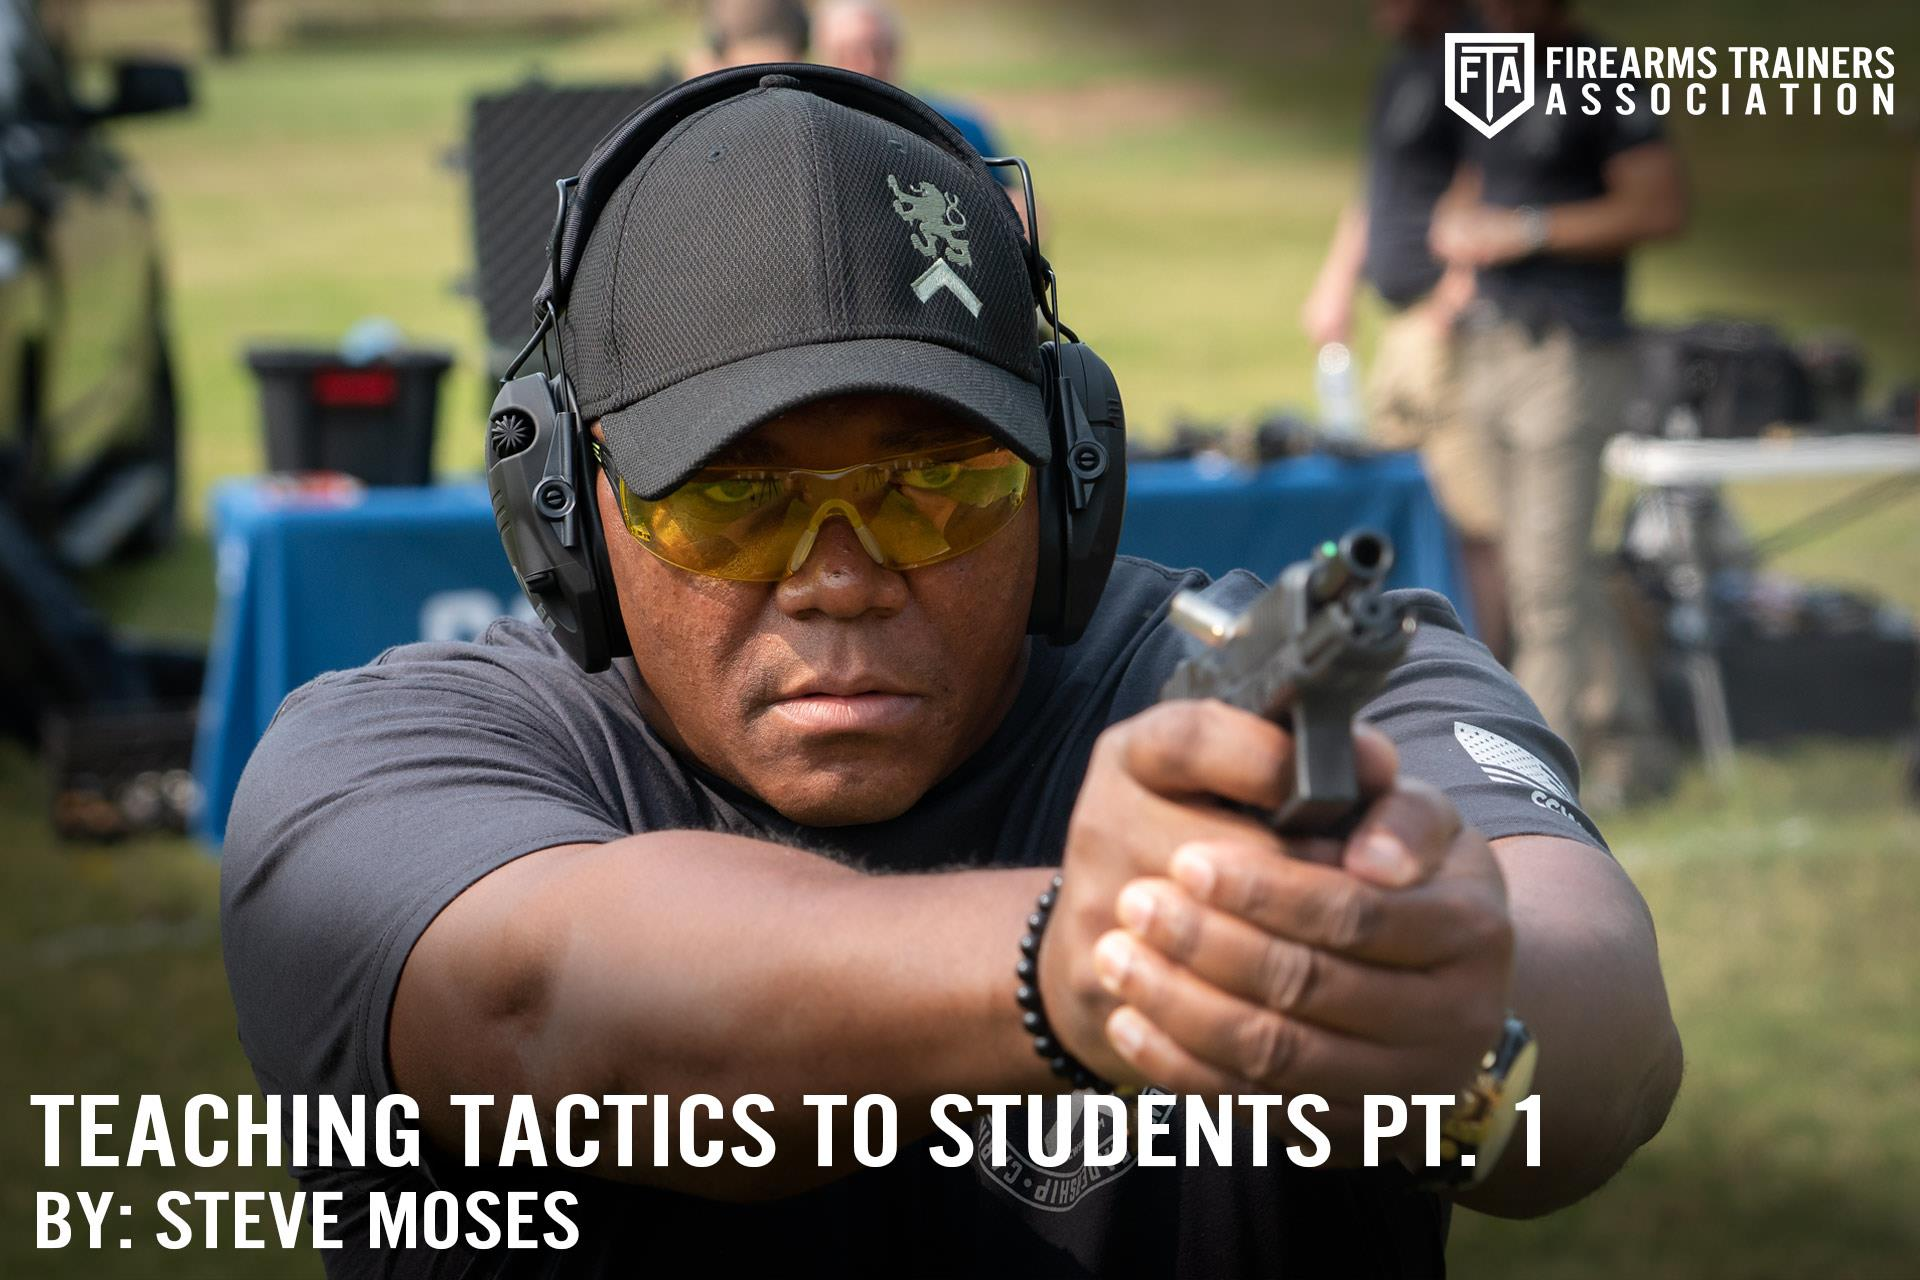 TEACHING TACTICS TO STUDENTS PT. 1